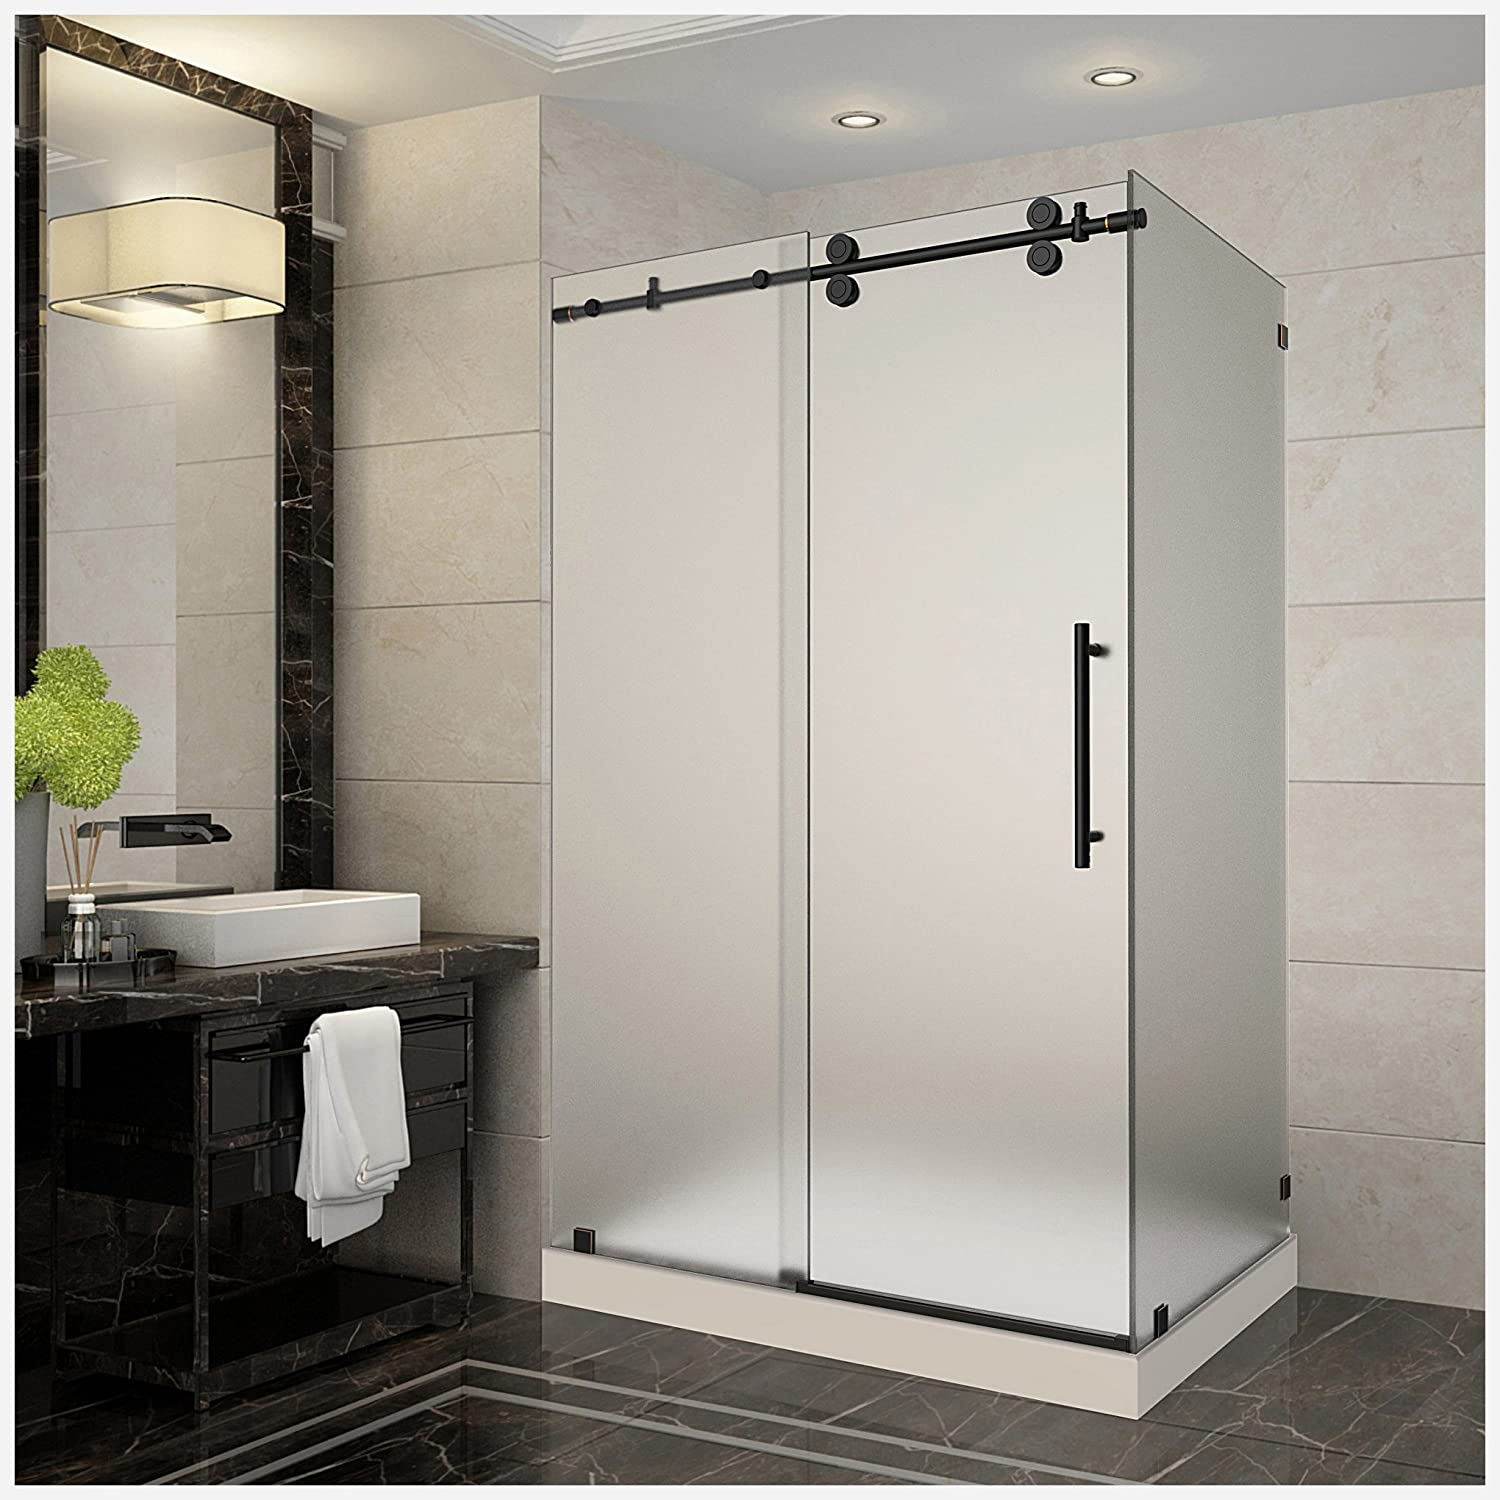 "Aston SEN979F-TR-ORB-48-10-R Langham Completely Frameless Frosted Glass Sliding Shower Enclosure in Oil Rubbed Bronze Finish with Right Base, 48"" x 35"" x 77.5"" good"